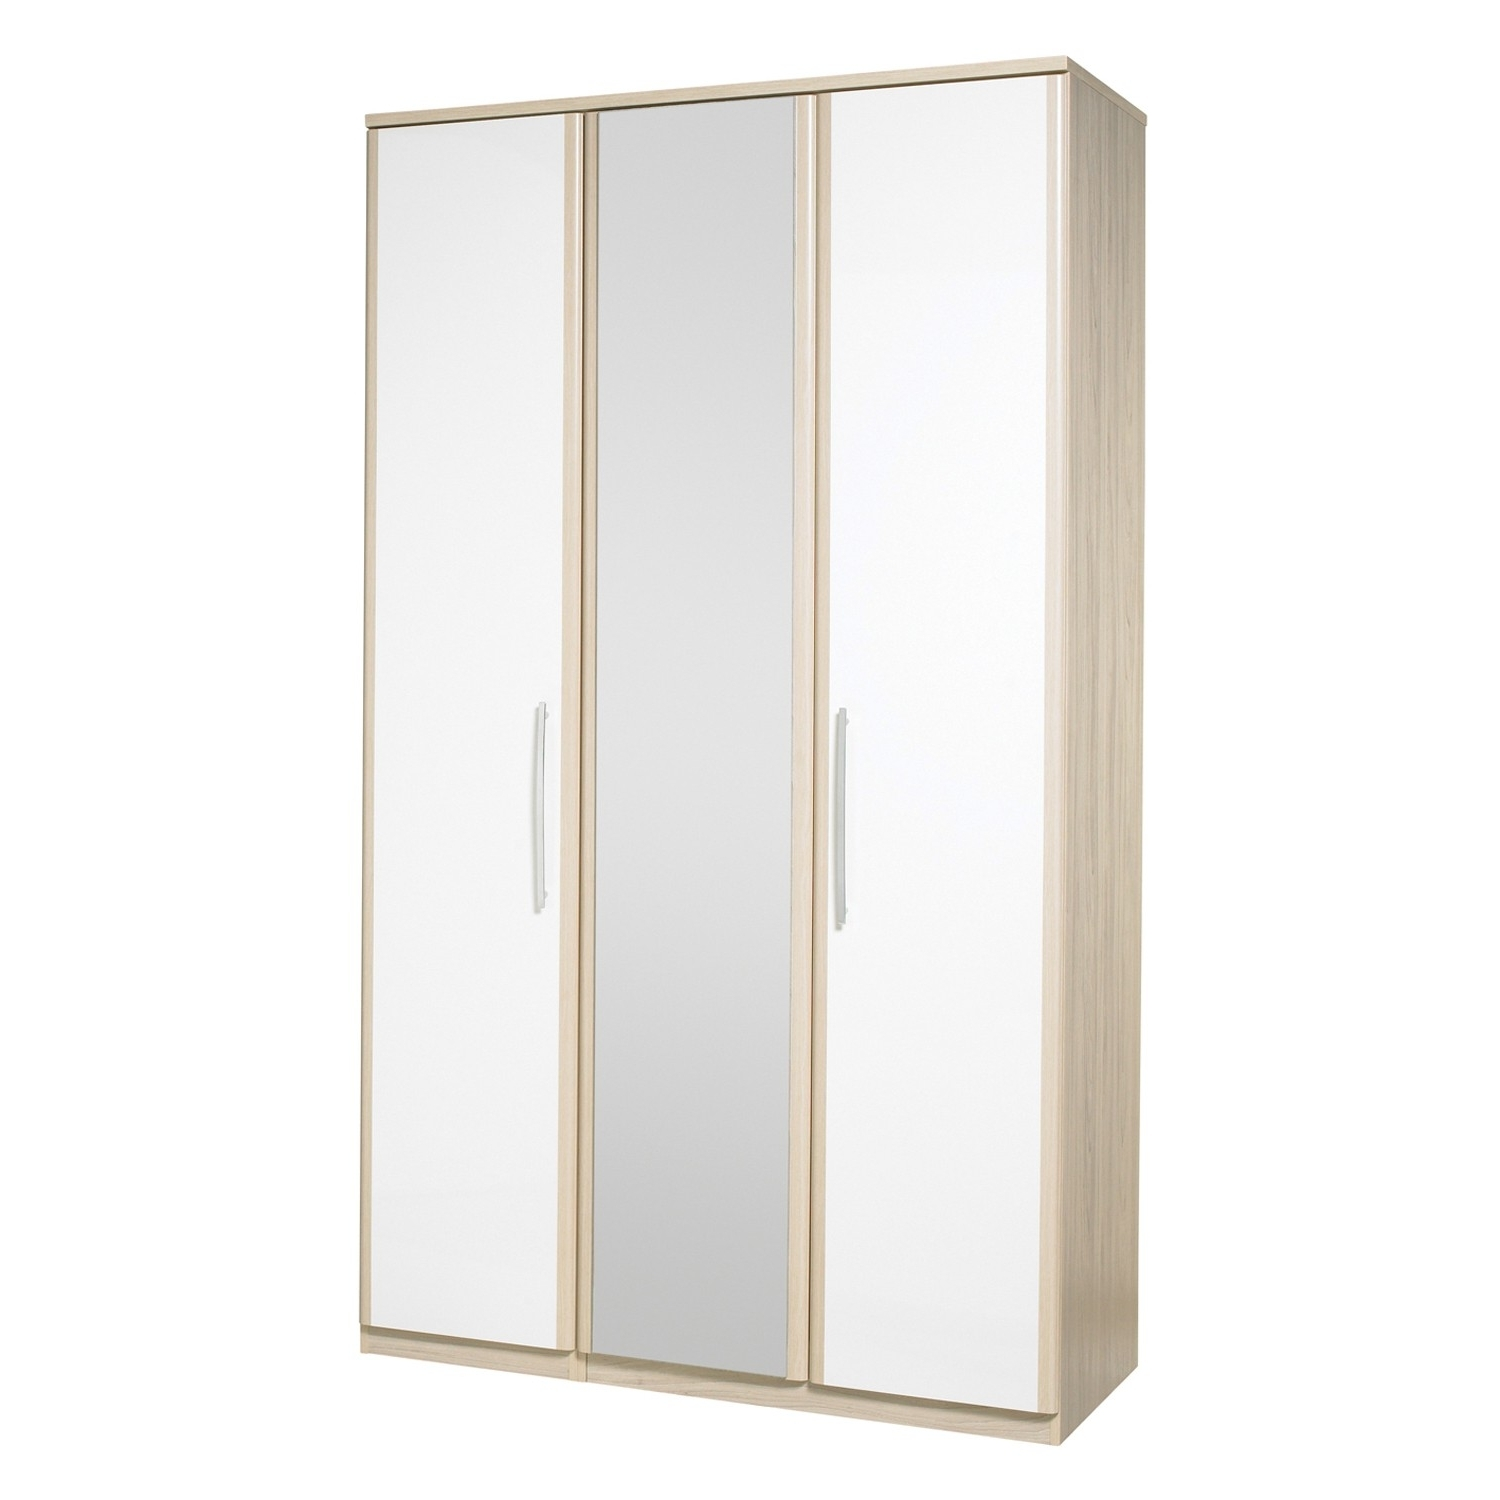 White 3 Door Wardrobes With Mirror Pertaining To Most Up To Date White 3 Door Wardrobe With Drawers And Mirror Armoire Corner (View 2 of 15)